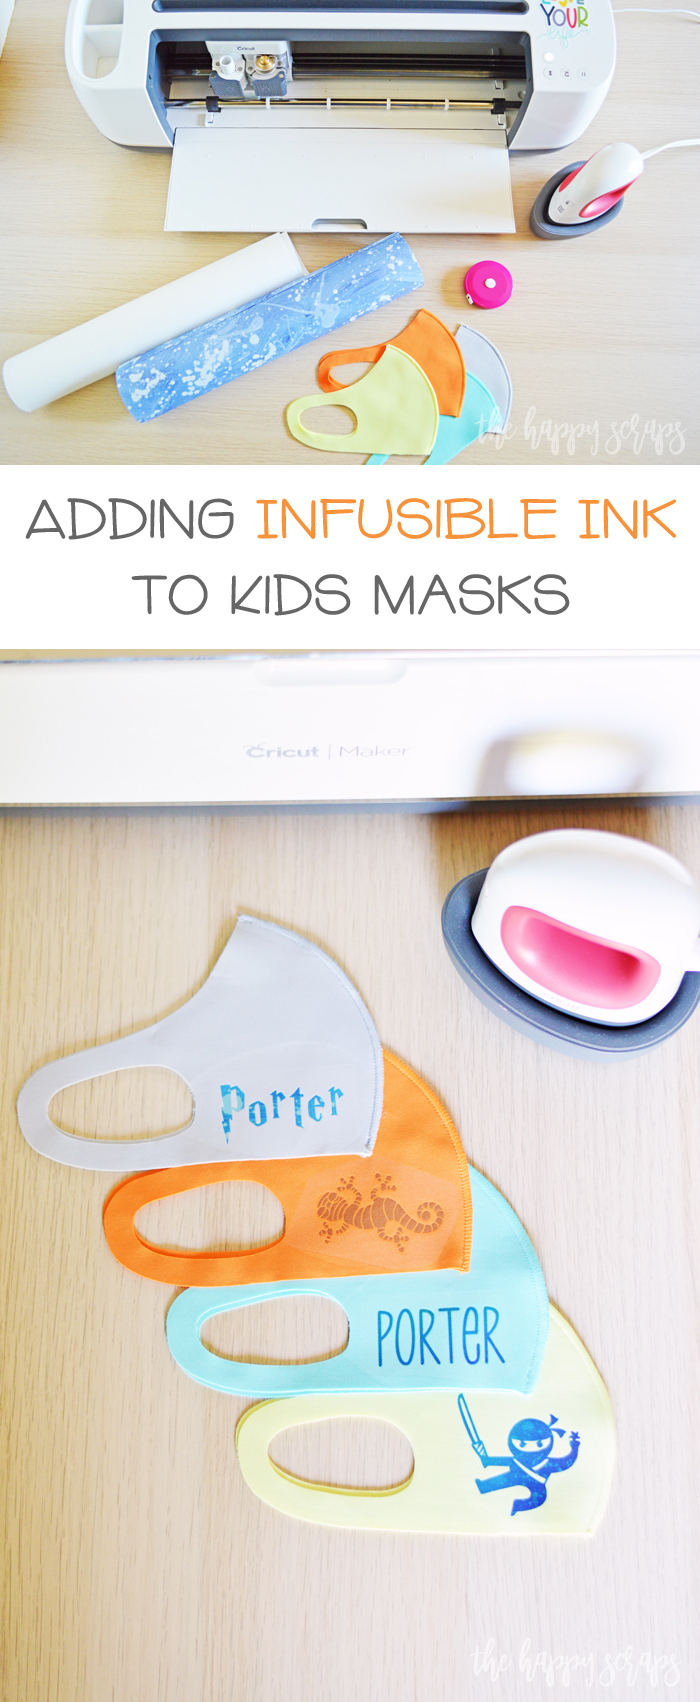 Adding Infusible Ink to Kids Masks is easy to do! Learn how to personalize store bought masks with Infusible Ink.